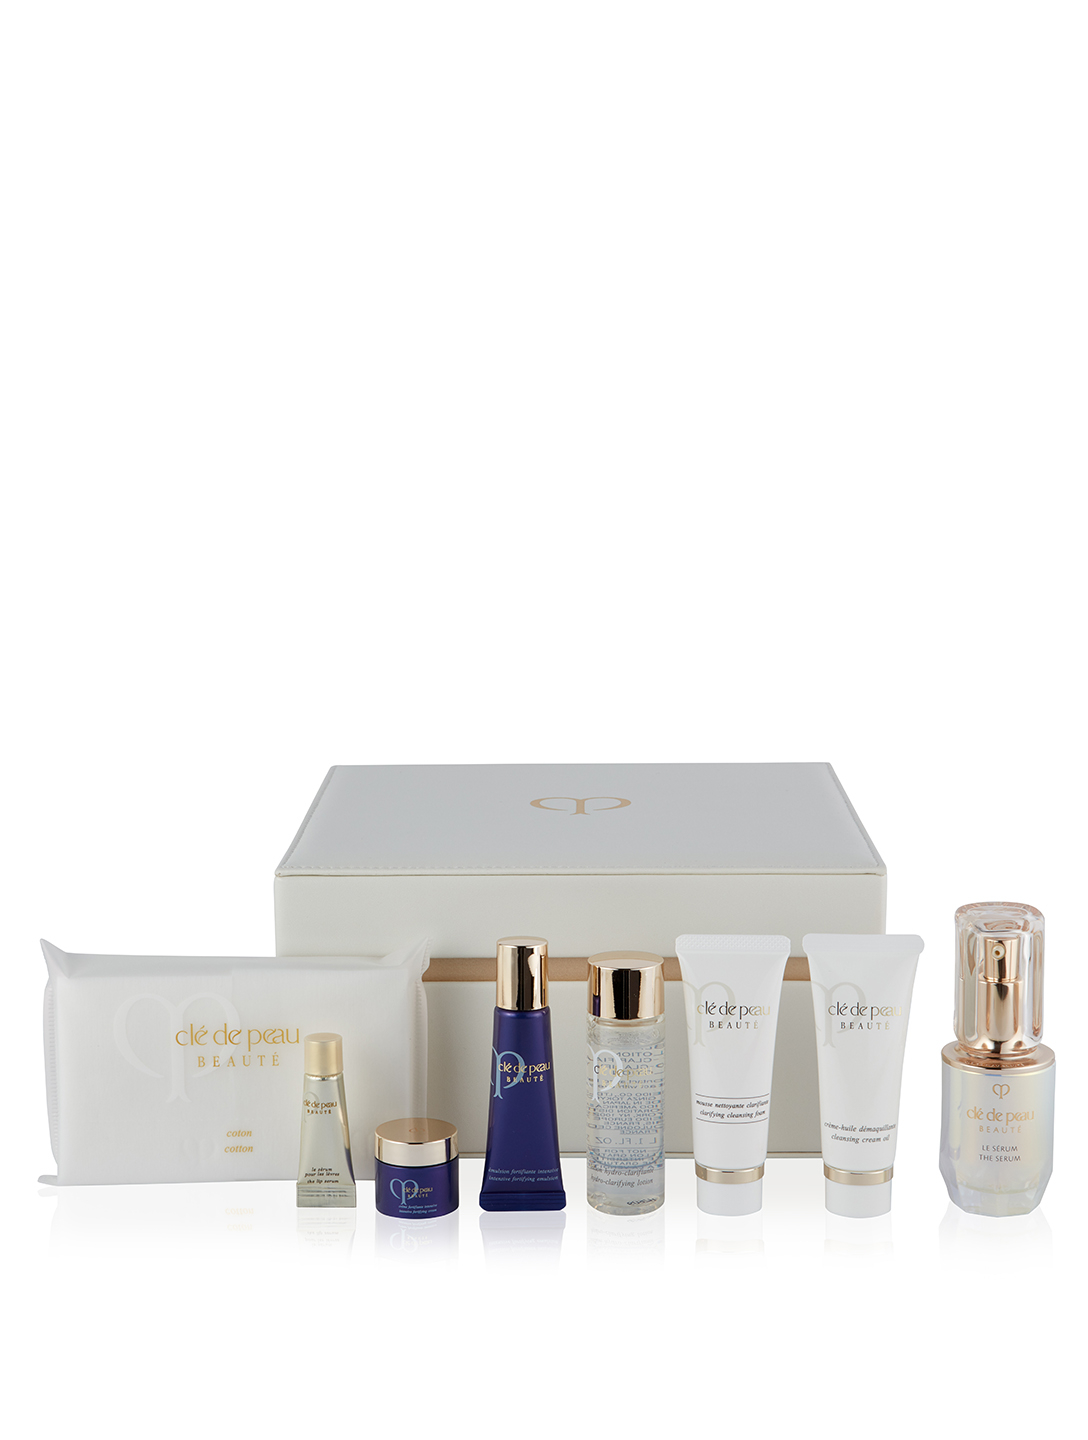 CLÉ DE PEAU BEAUTÉ Le Serum & Key Radiance Set Beauty